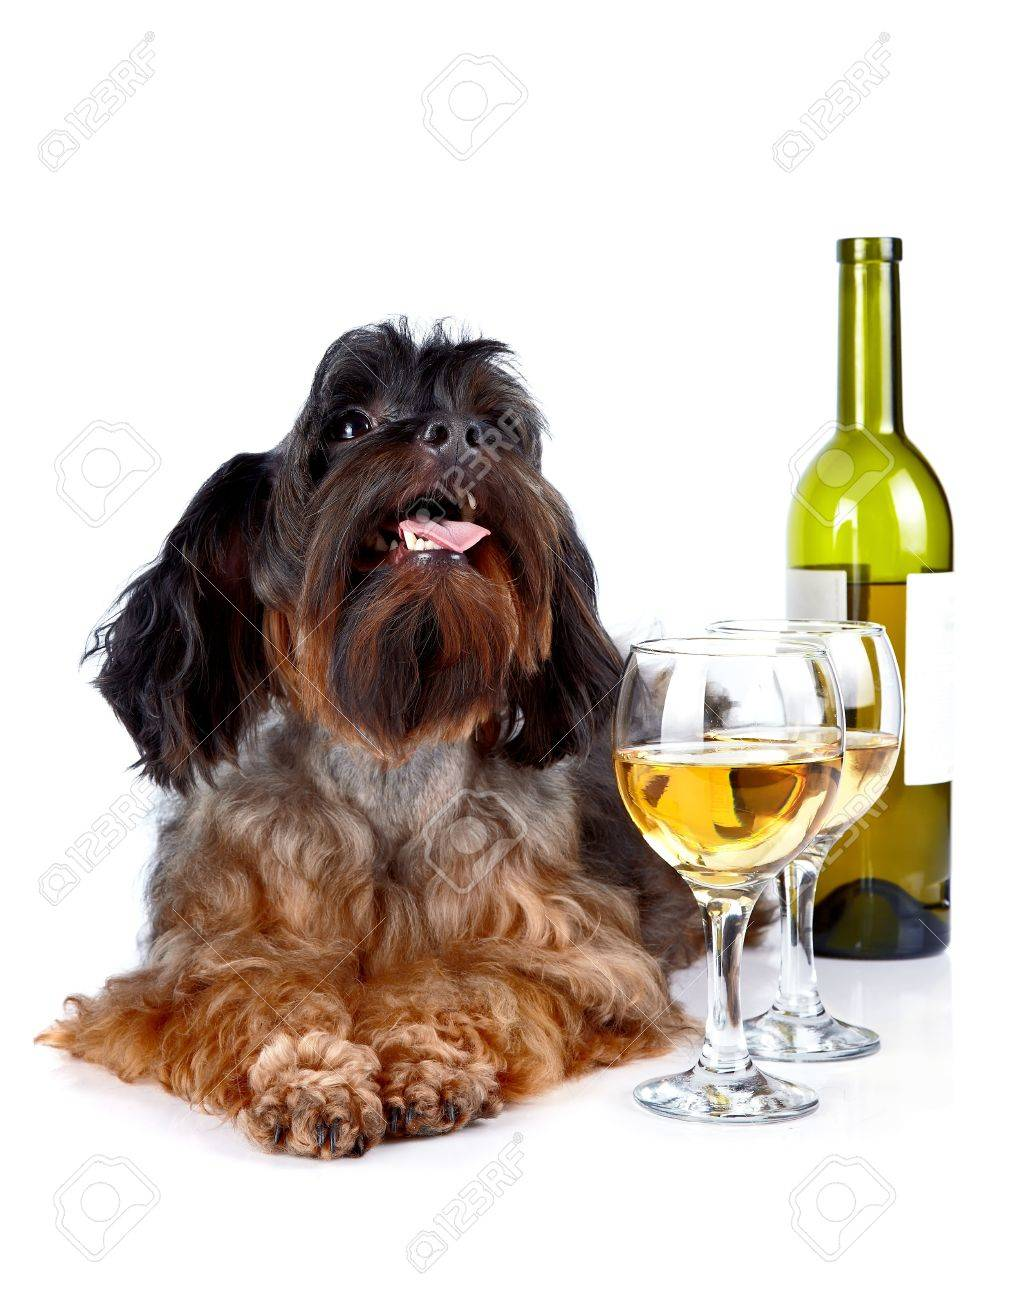 Dog with a wine glass  Small dog  Decorative thoroughbred dog  Puppy of the Petersburg orchid  Shaggy dog Standard-Bild - 18724730